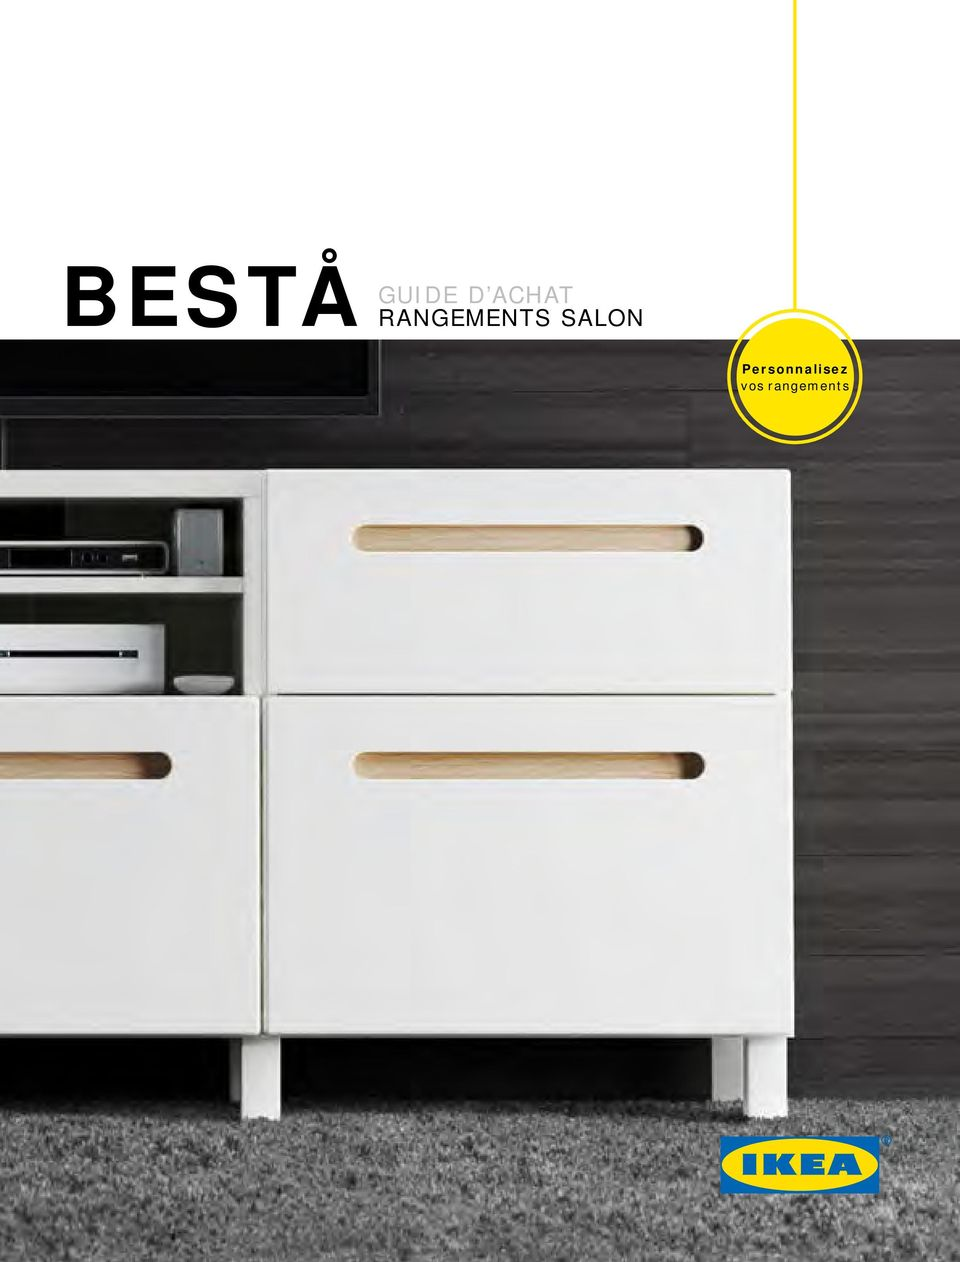 Outil planification besta for Ikea outil planification